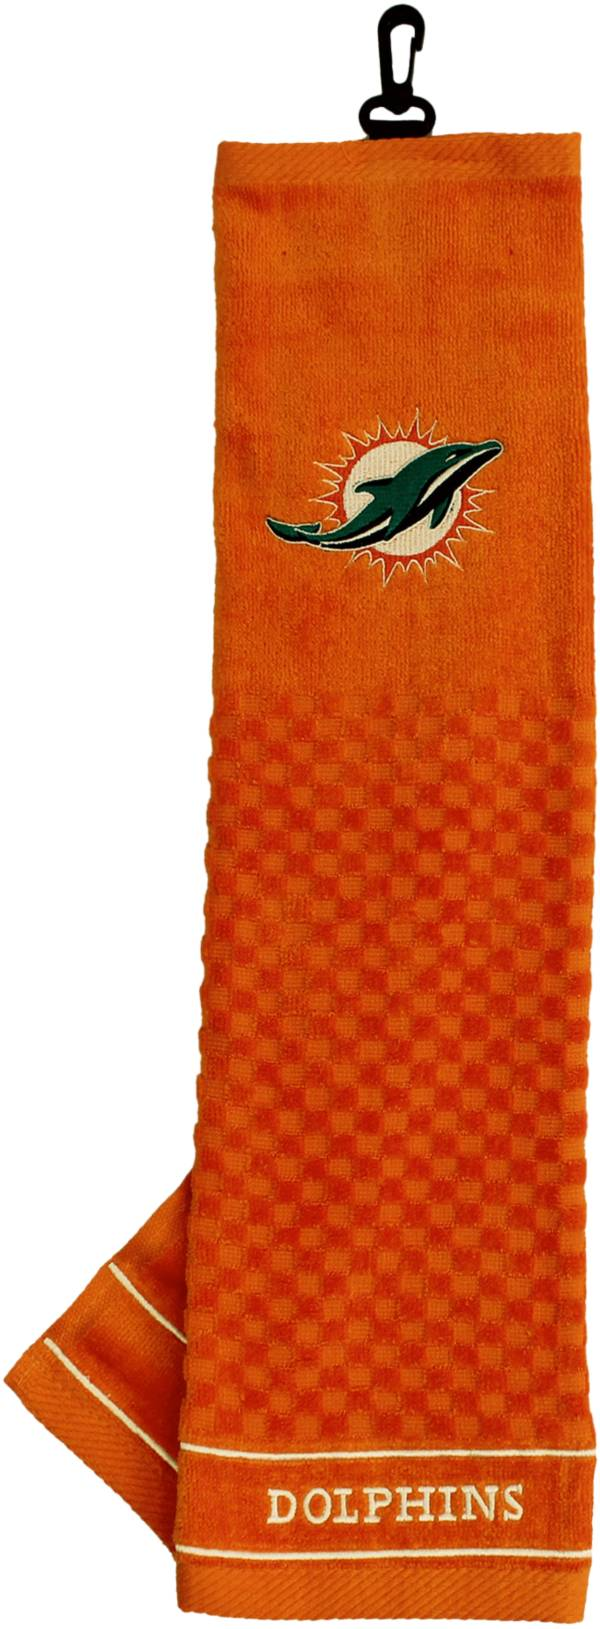 Team Golf Miami Dolphins Embroidered Golf Towel product image